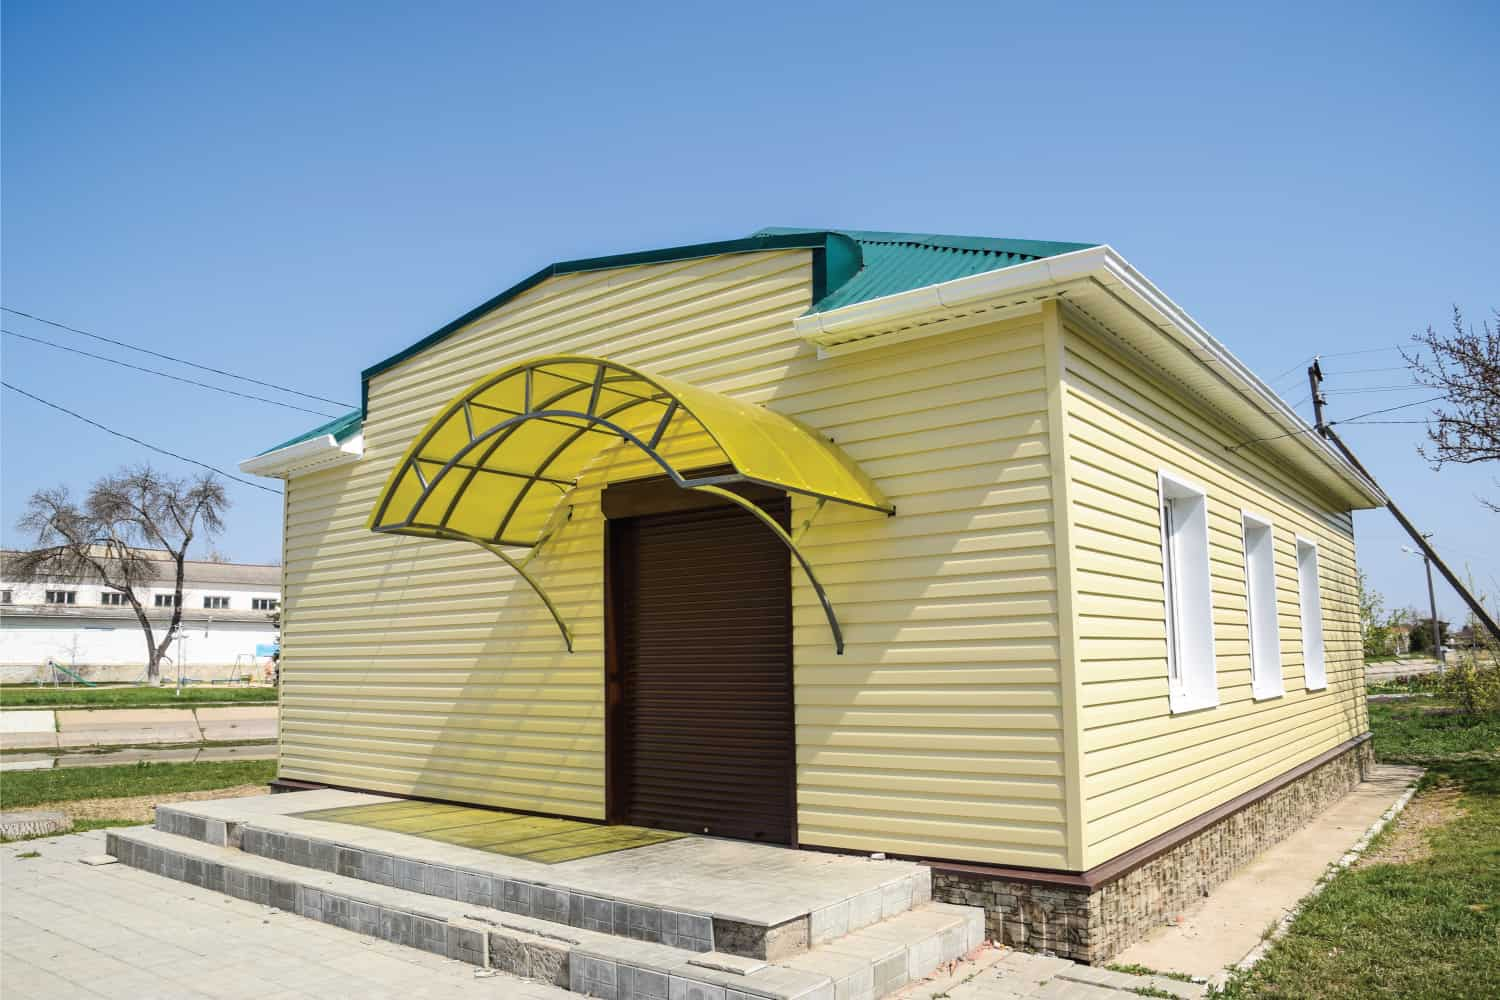 House under the sun, lined with plastic siding